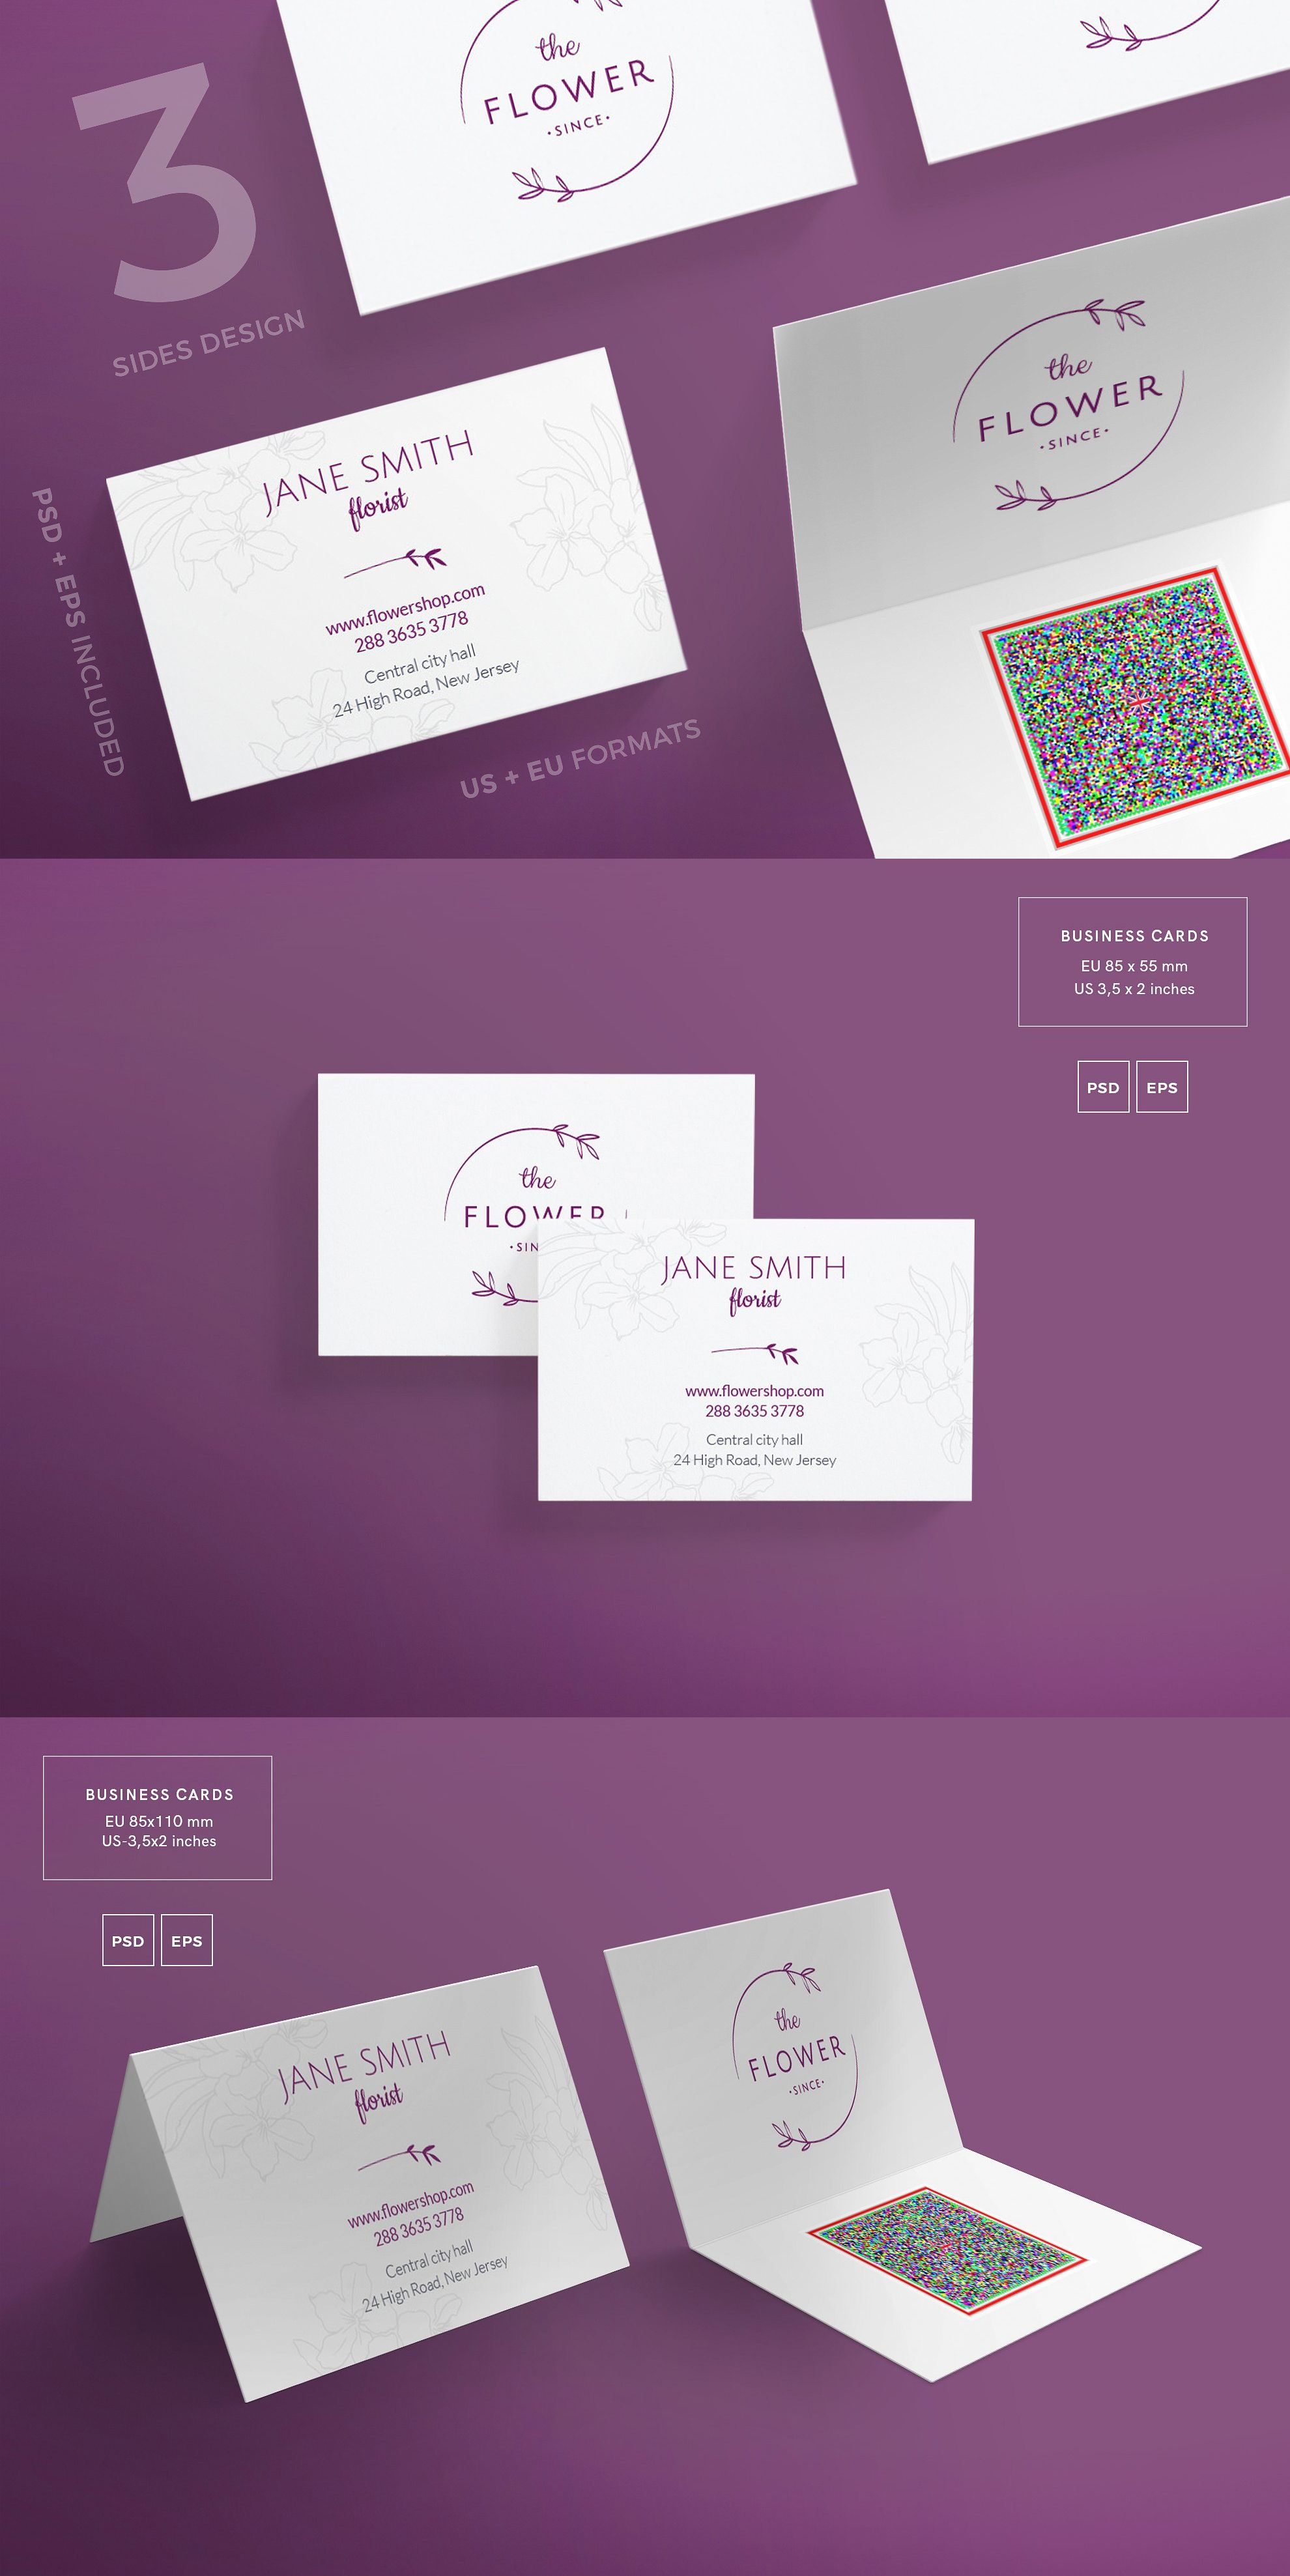 Business cards template flower shop pdf business card template business cards template flower shop pdf alramifo Gallery